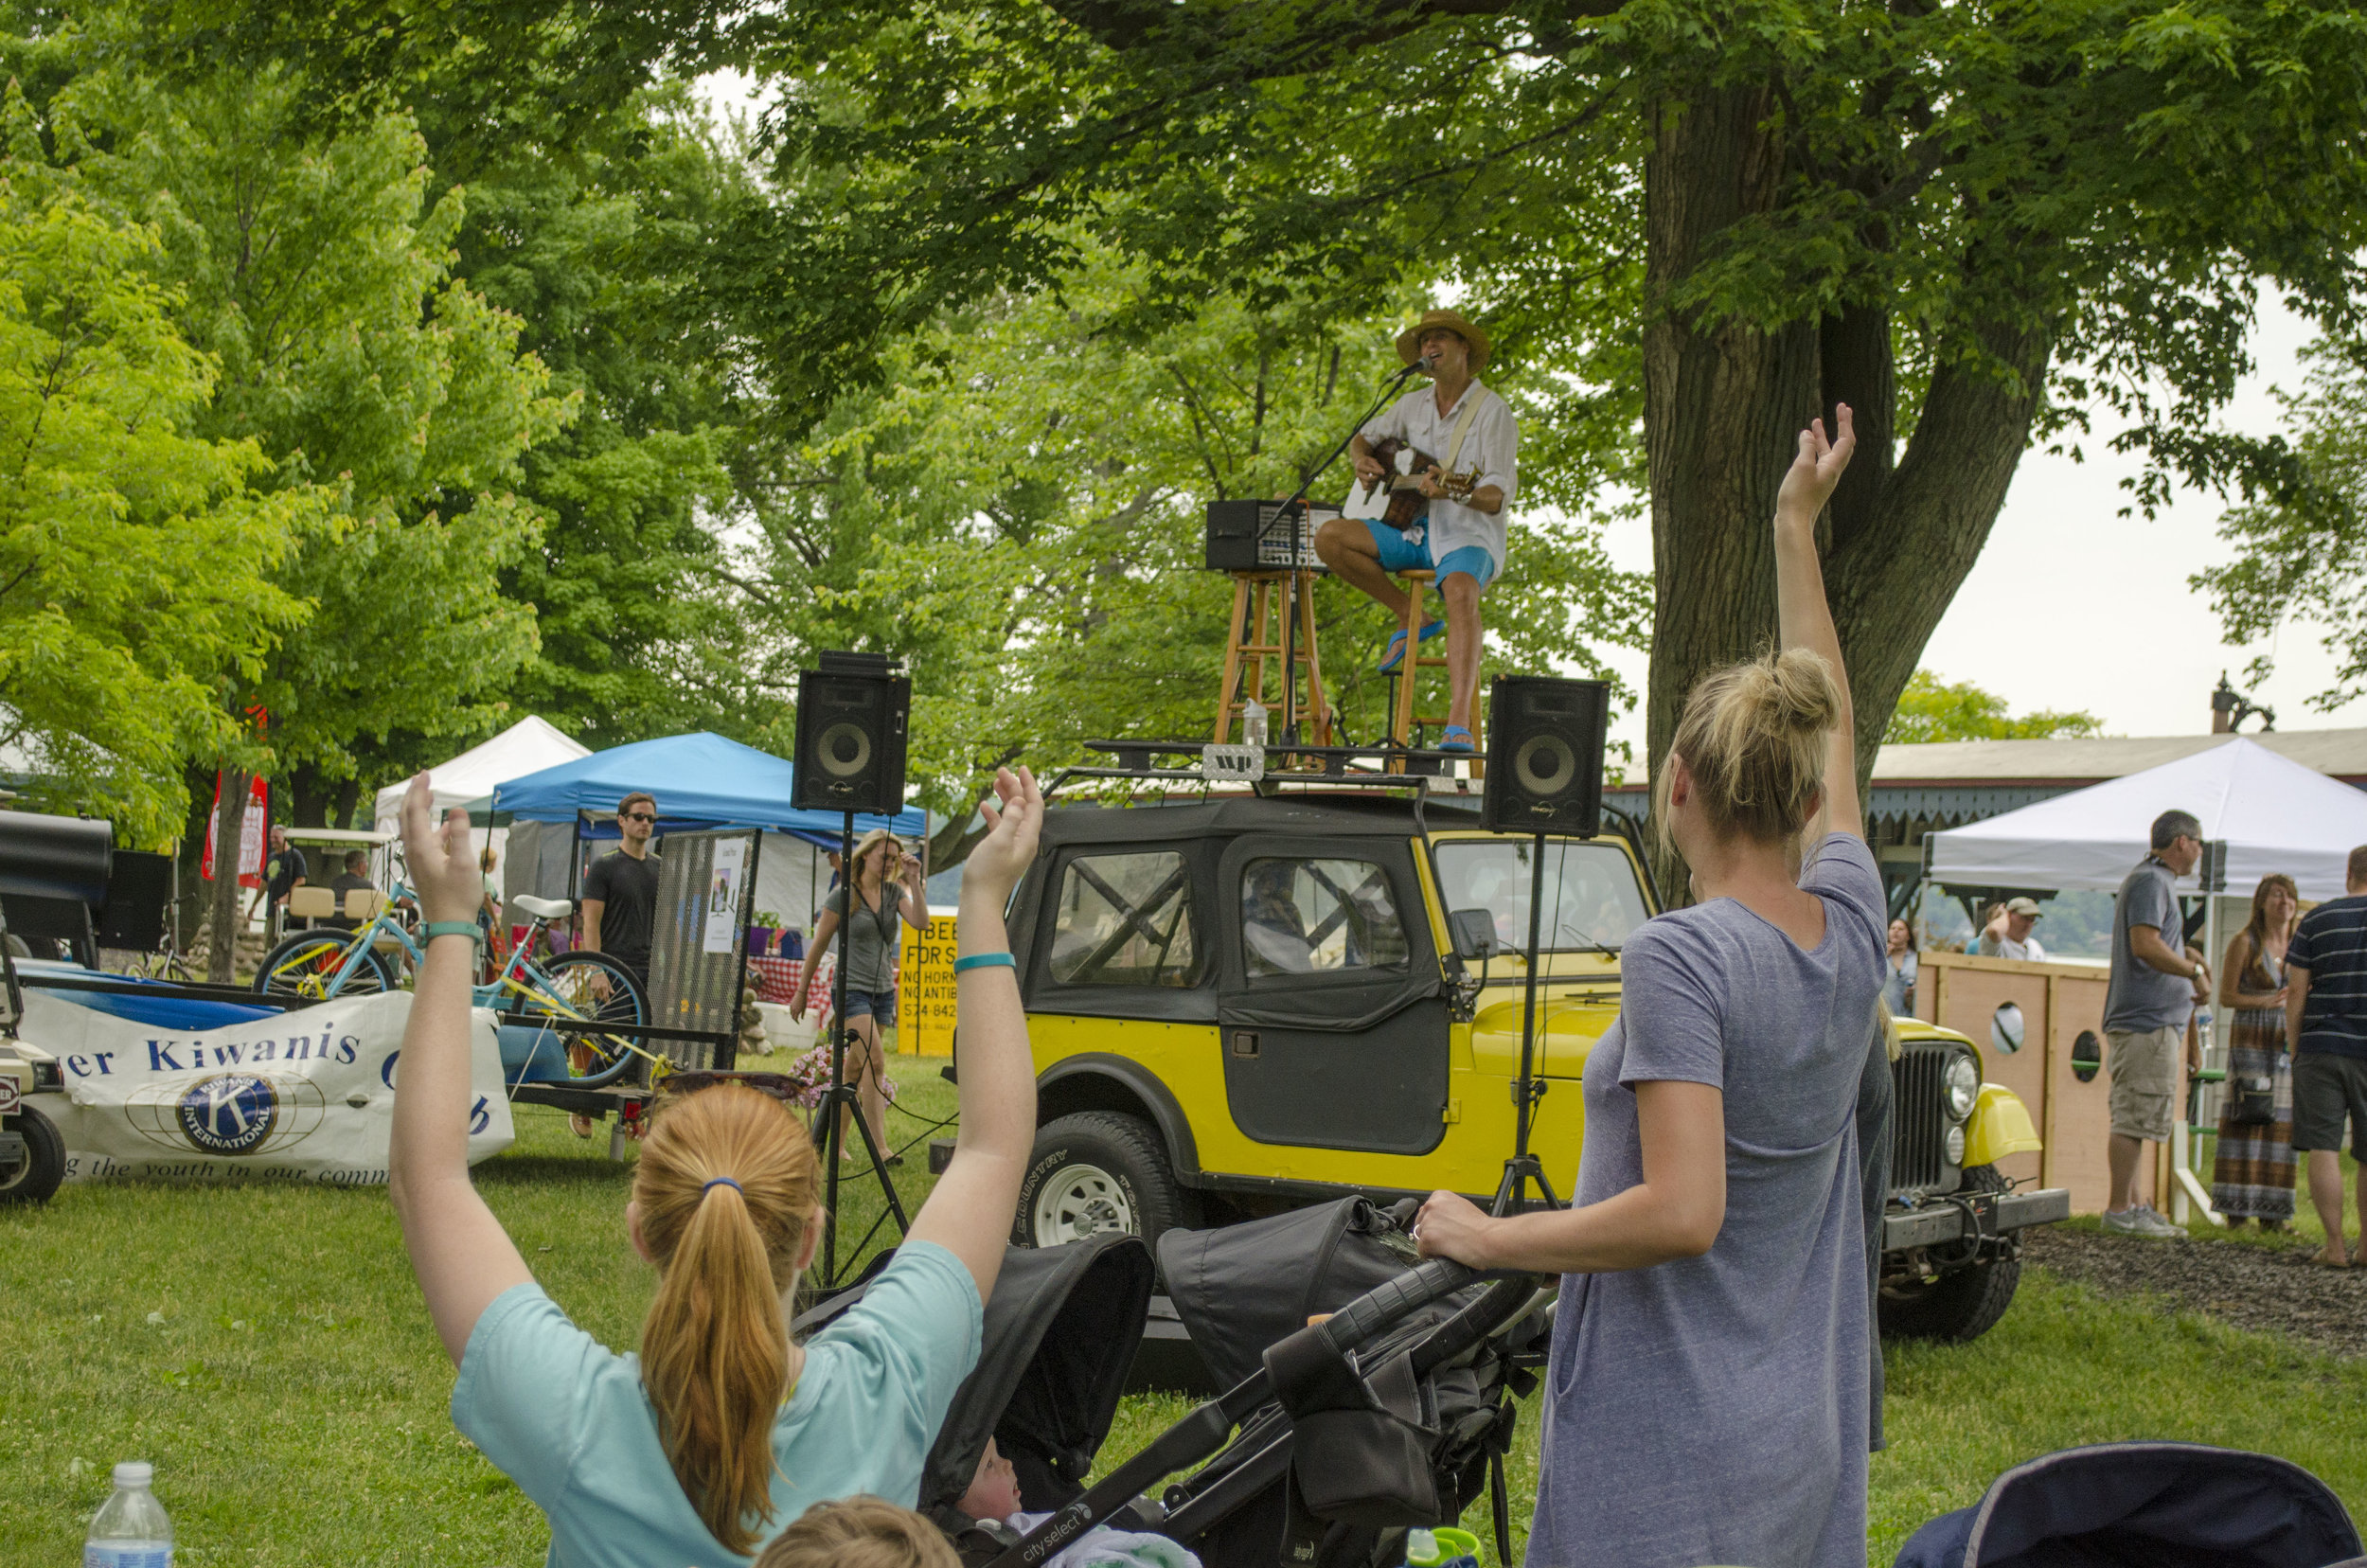 Chad Van Herk plays music from atop his Jeep.